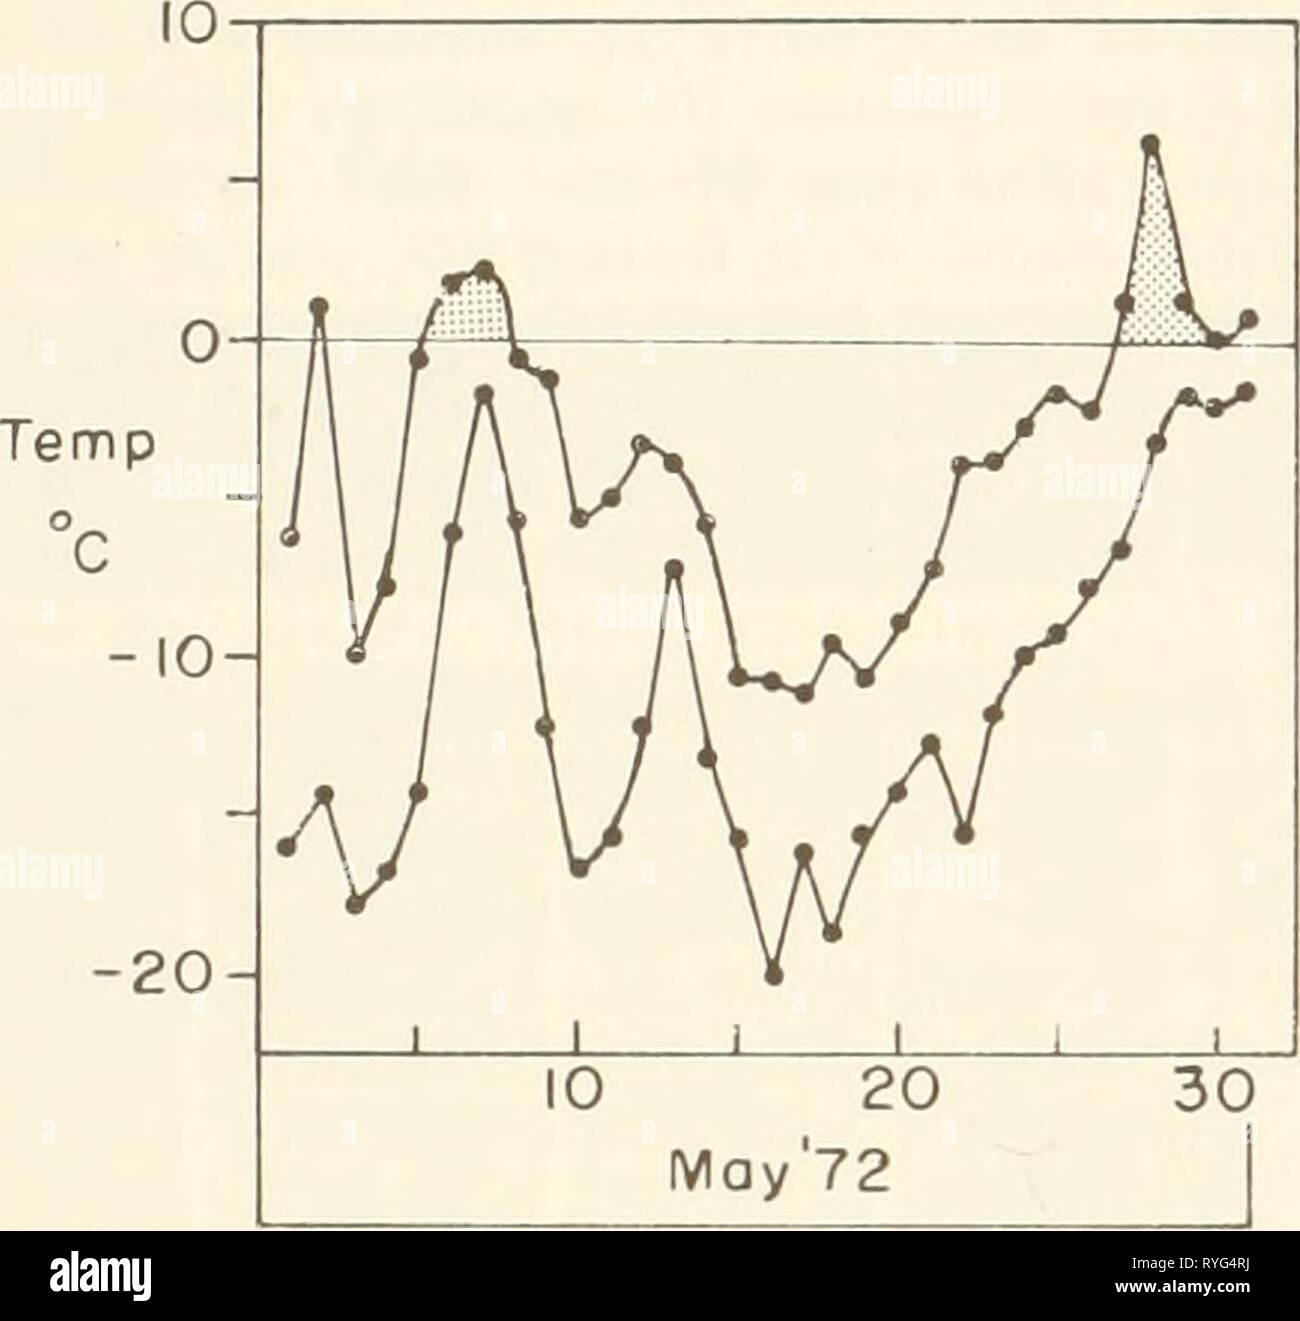 Ecological investigations of the tundra biome in the Prudhoe Bay region, Alaska  ecologicalinvest00brow Year: 1975  22    Fig. 8. Air temperature plot for May 1972. - 5 Temp, C -10 -5 0 01 Density, g cm'^ 3 0,20 0,30 0.40 0,50 r * ⦠⦠â â¢- ^ ⢠1 ' 1 1 1 1 1 ' 1 t 1 , I so ^ £ 60 H 40 I 20 ^ â¢'-^^-^ ^ *' a. 28 meters east of P2 (6 meters east of rood) Temp, C Density, g cm'* -15 -10 -5 0 010 0,20 0.30 0.40 0,50 r 1 â¢^ t » t -1 1 1 1 1 1 1 1 1 â â I' ,±. ( â o o 'â ' ' . '-^''/^^A i 1 i b, 40 meters eost of P2 Temp,°C Density, g cm'* 15 -10 -5 0 0,10 0,^0 0,30 040 0 50 |20 o 0 c, 90 me - Stock Image